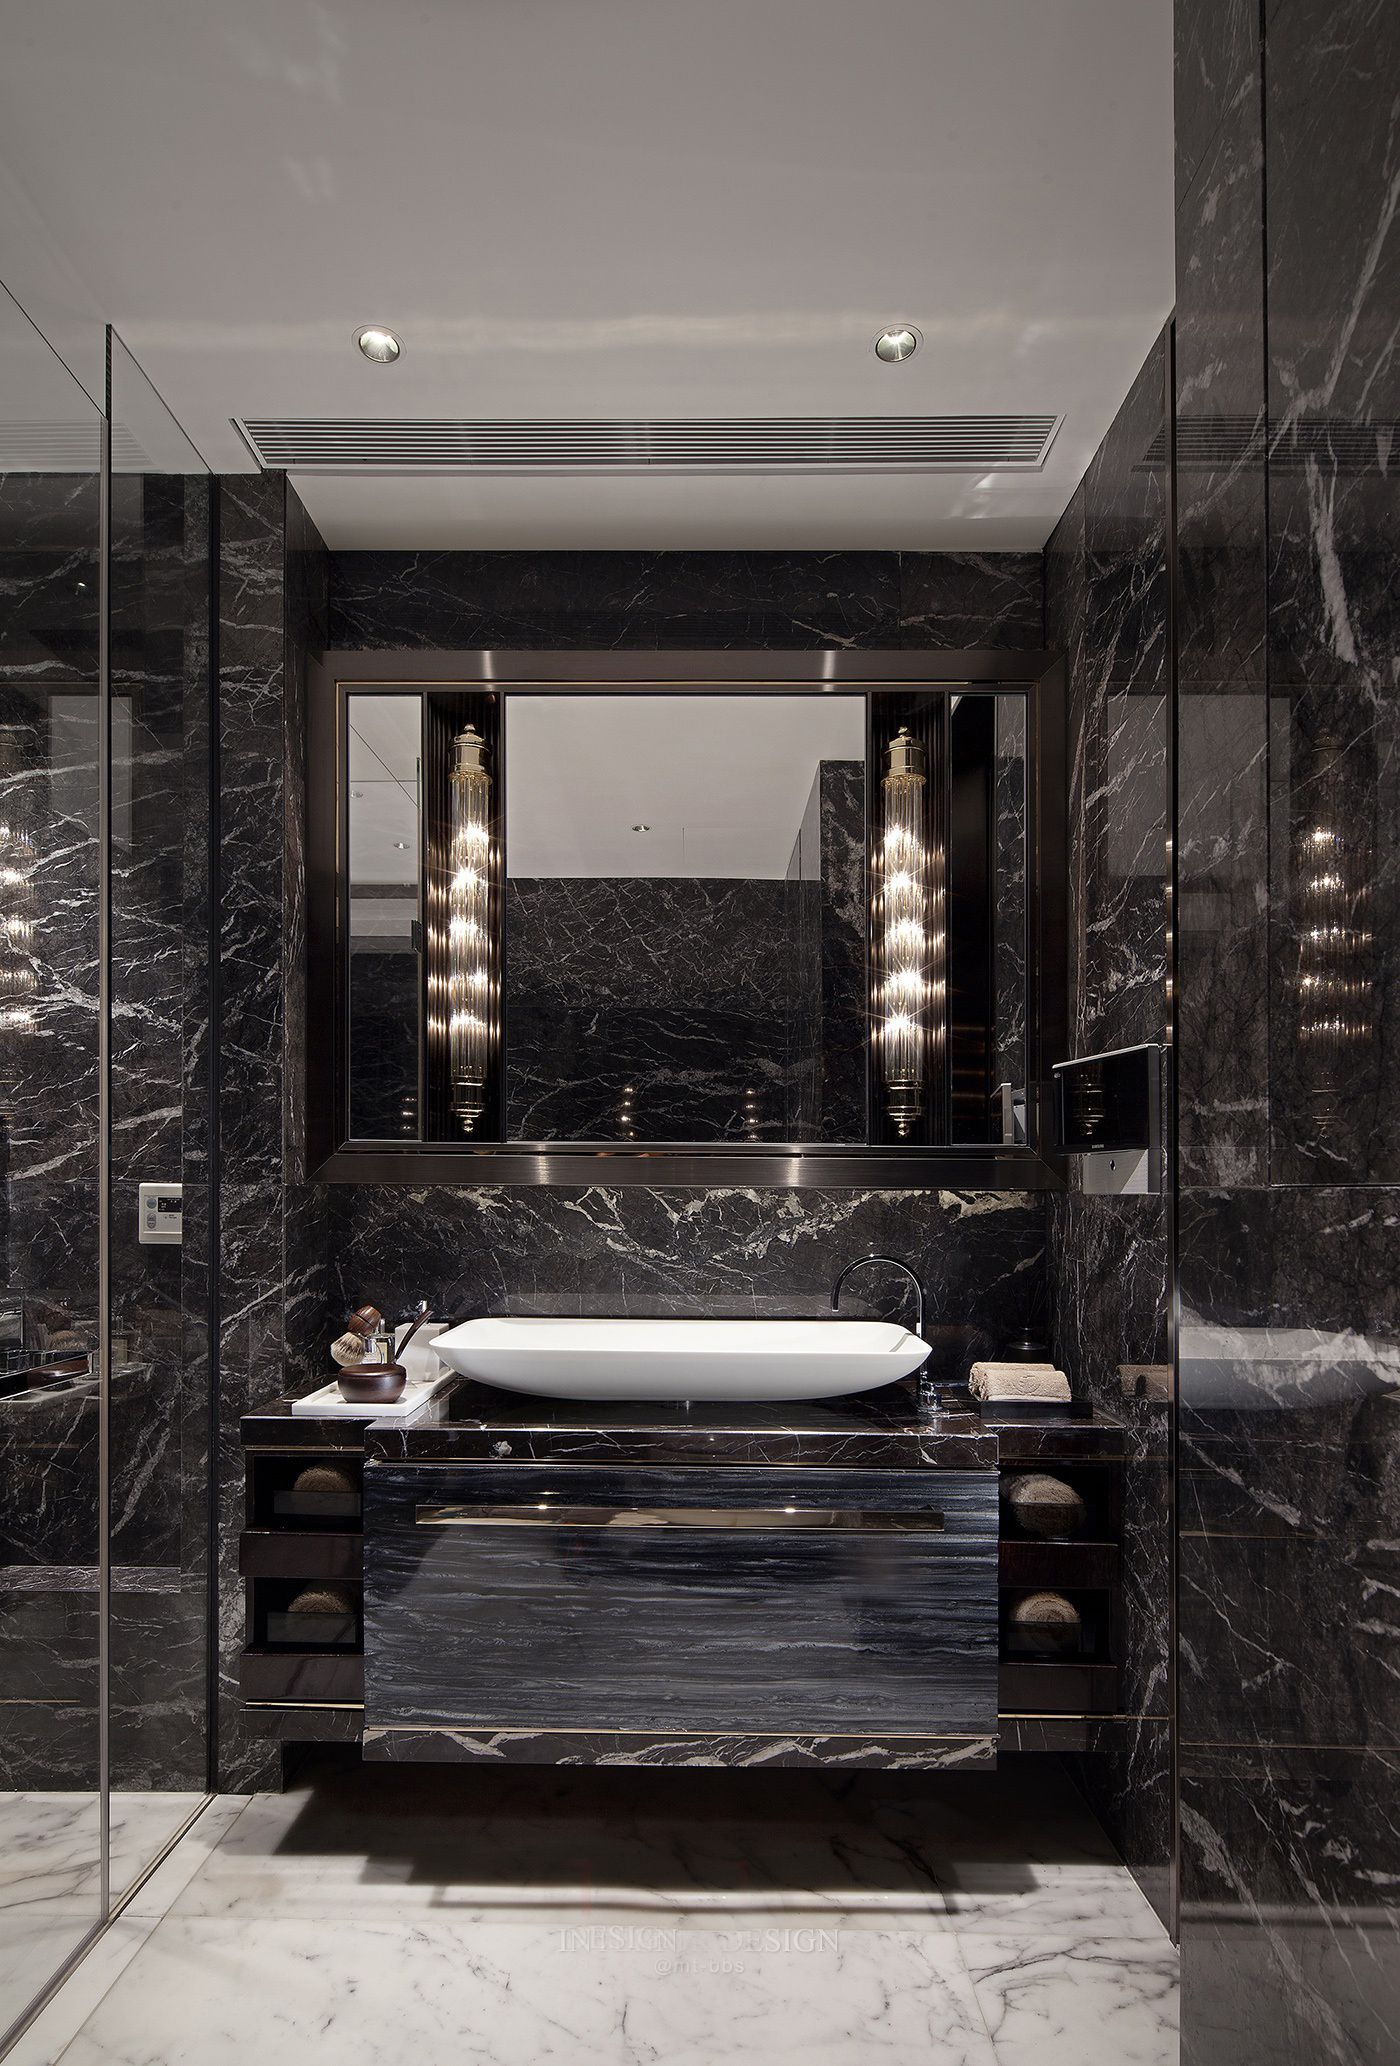 Luxury bathroom luxury modern bathrooms pinterest for Luxury toilet design